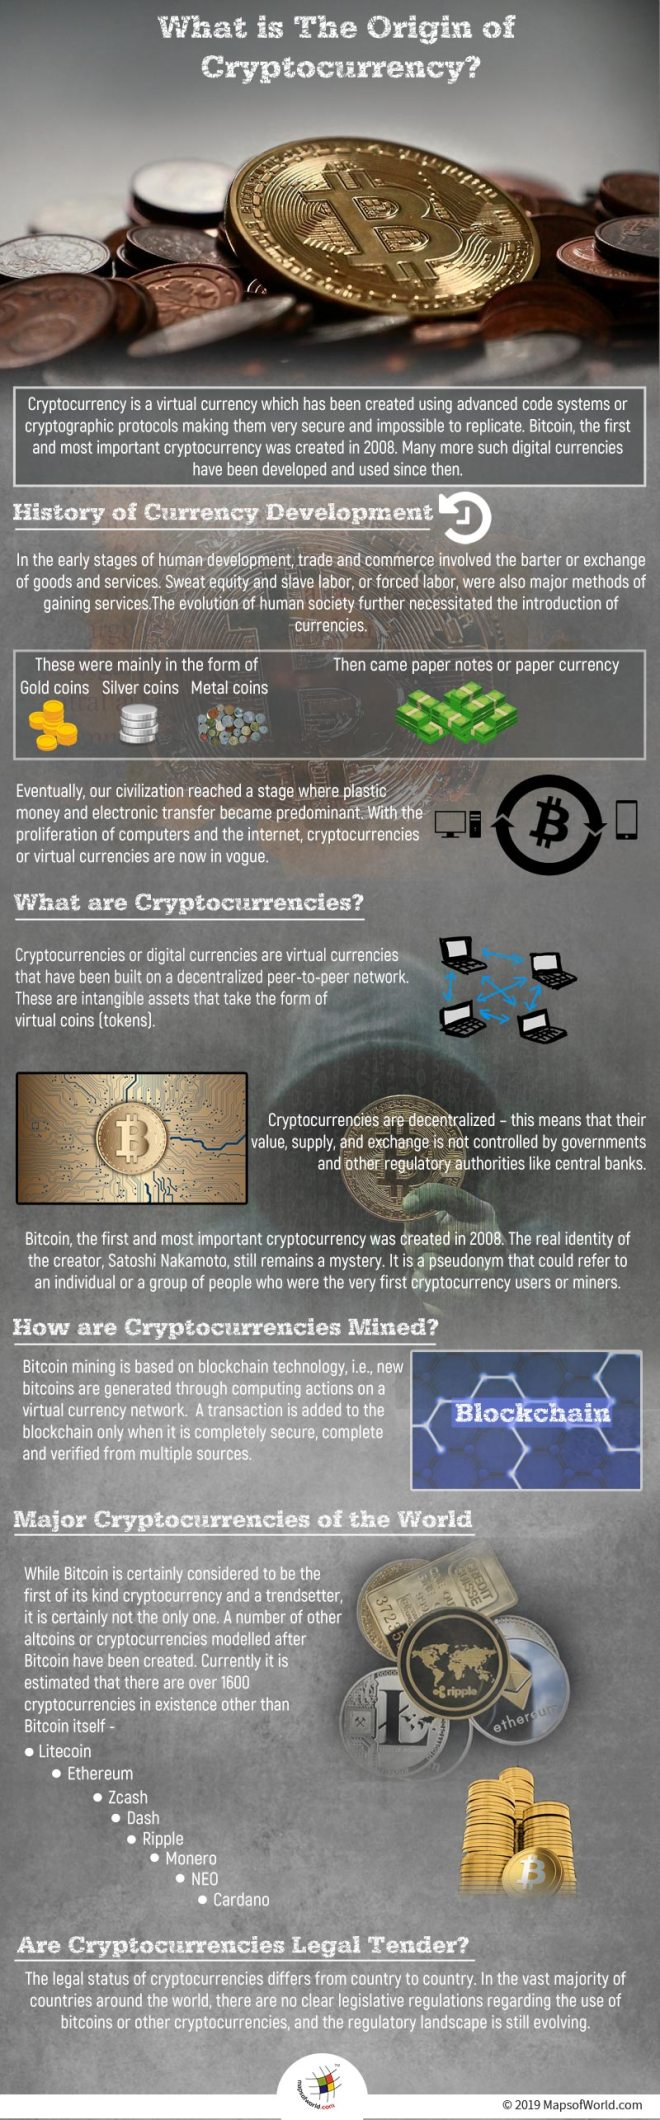 The Origin of Cryptocurrency